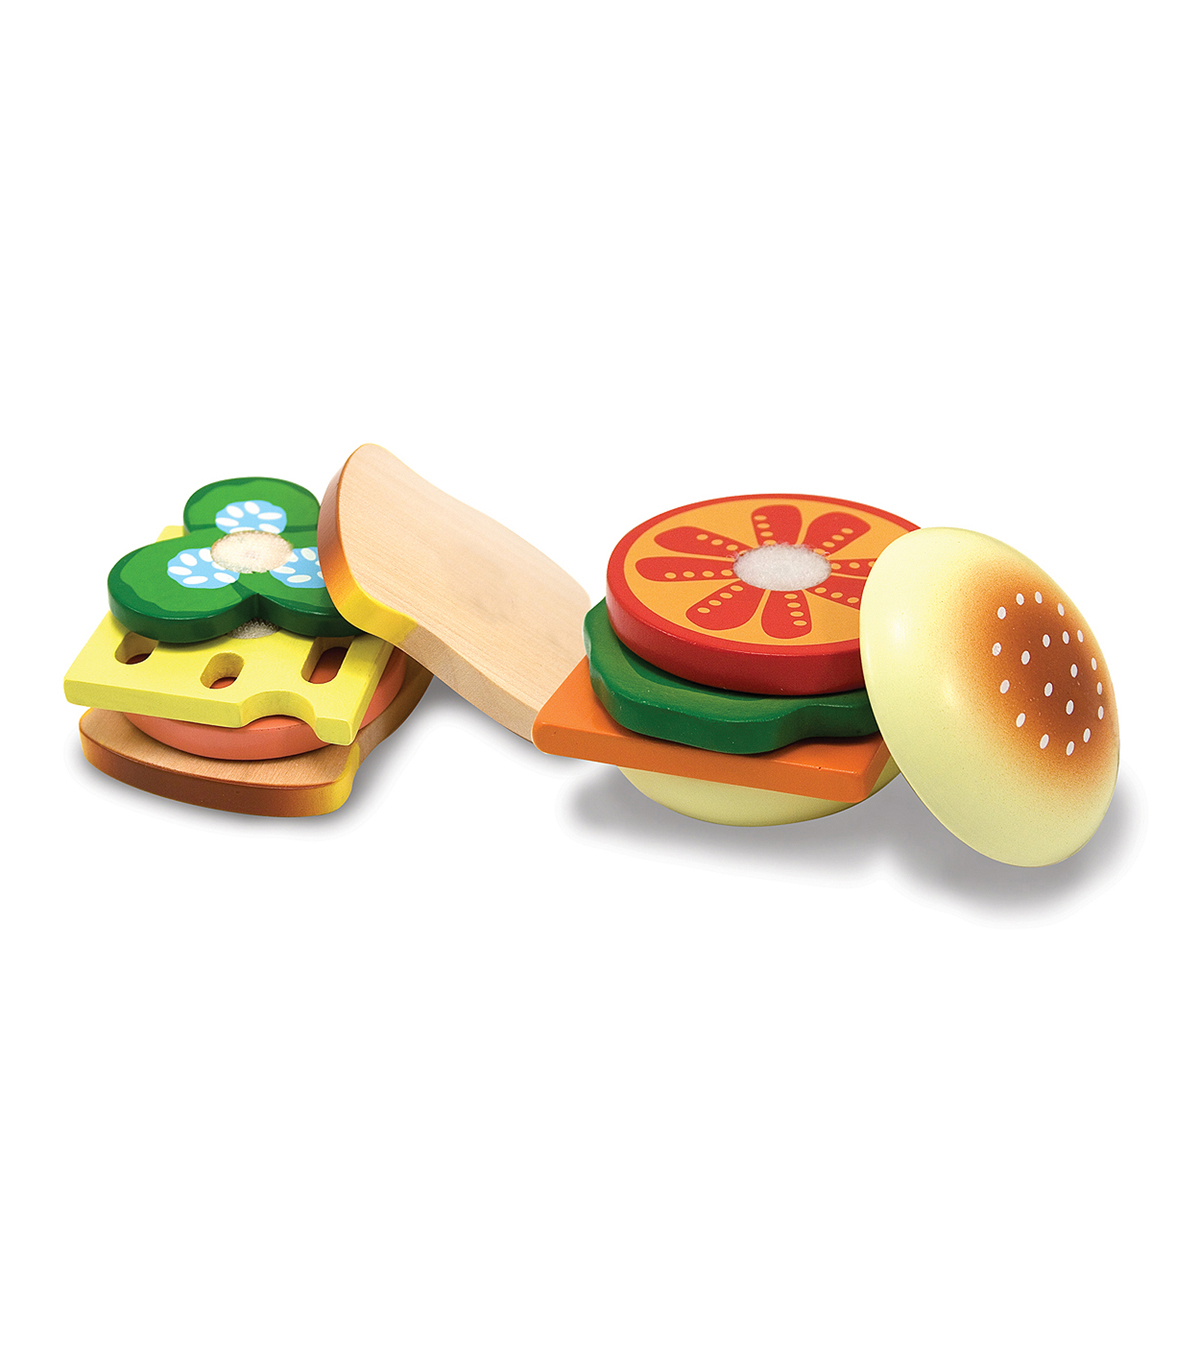 Sandwich-Making Wooden Play Food Set